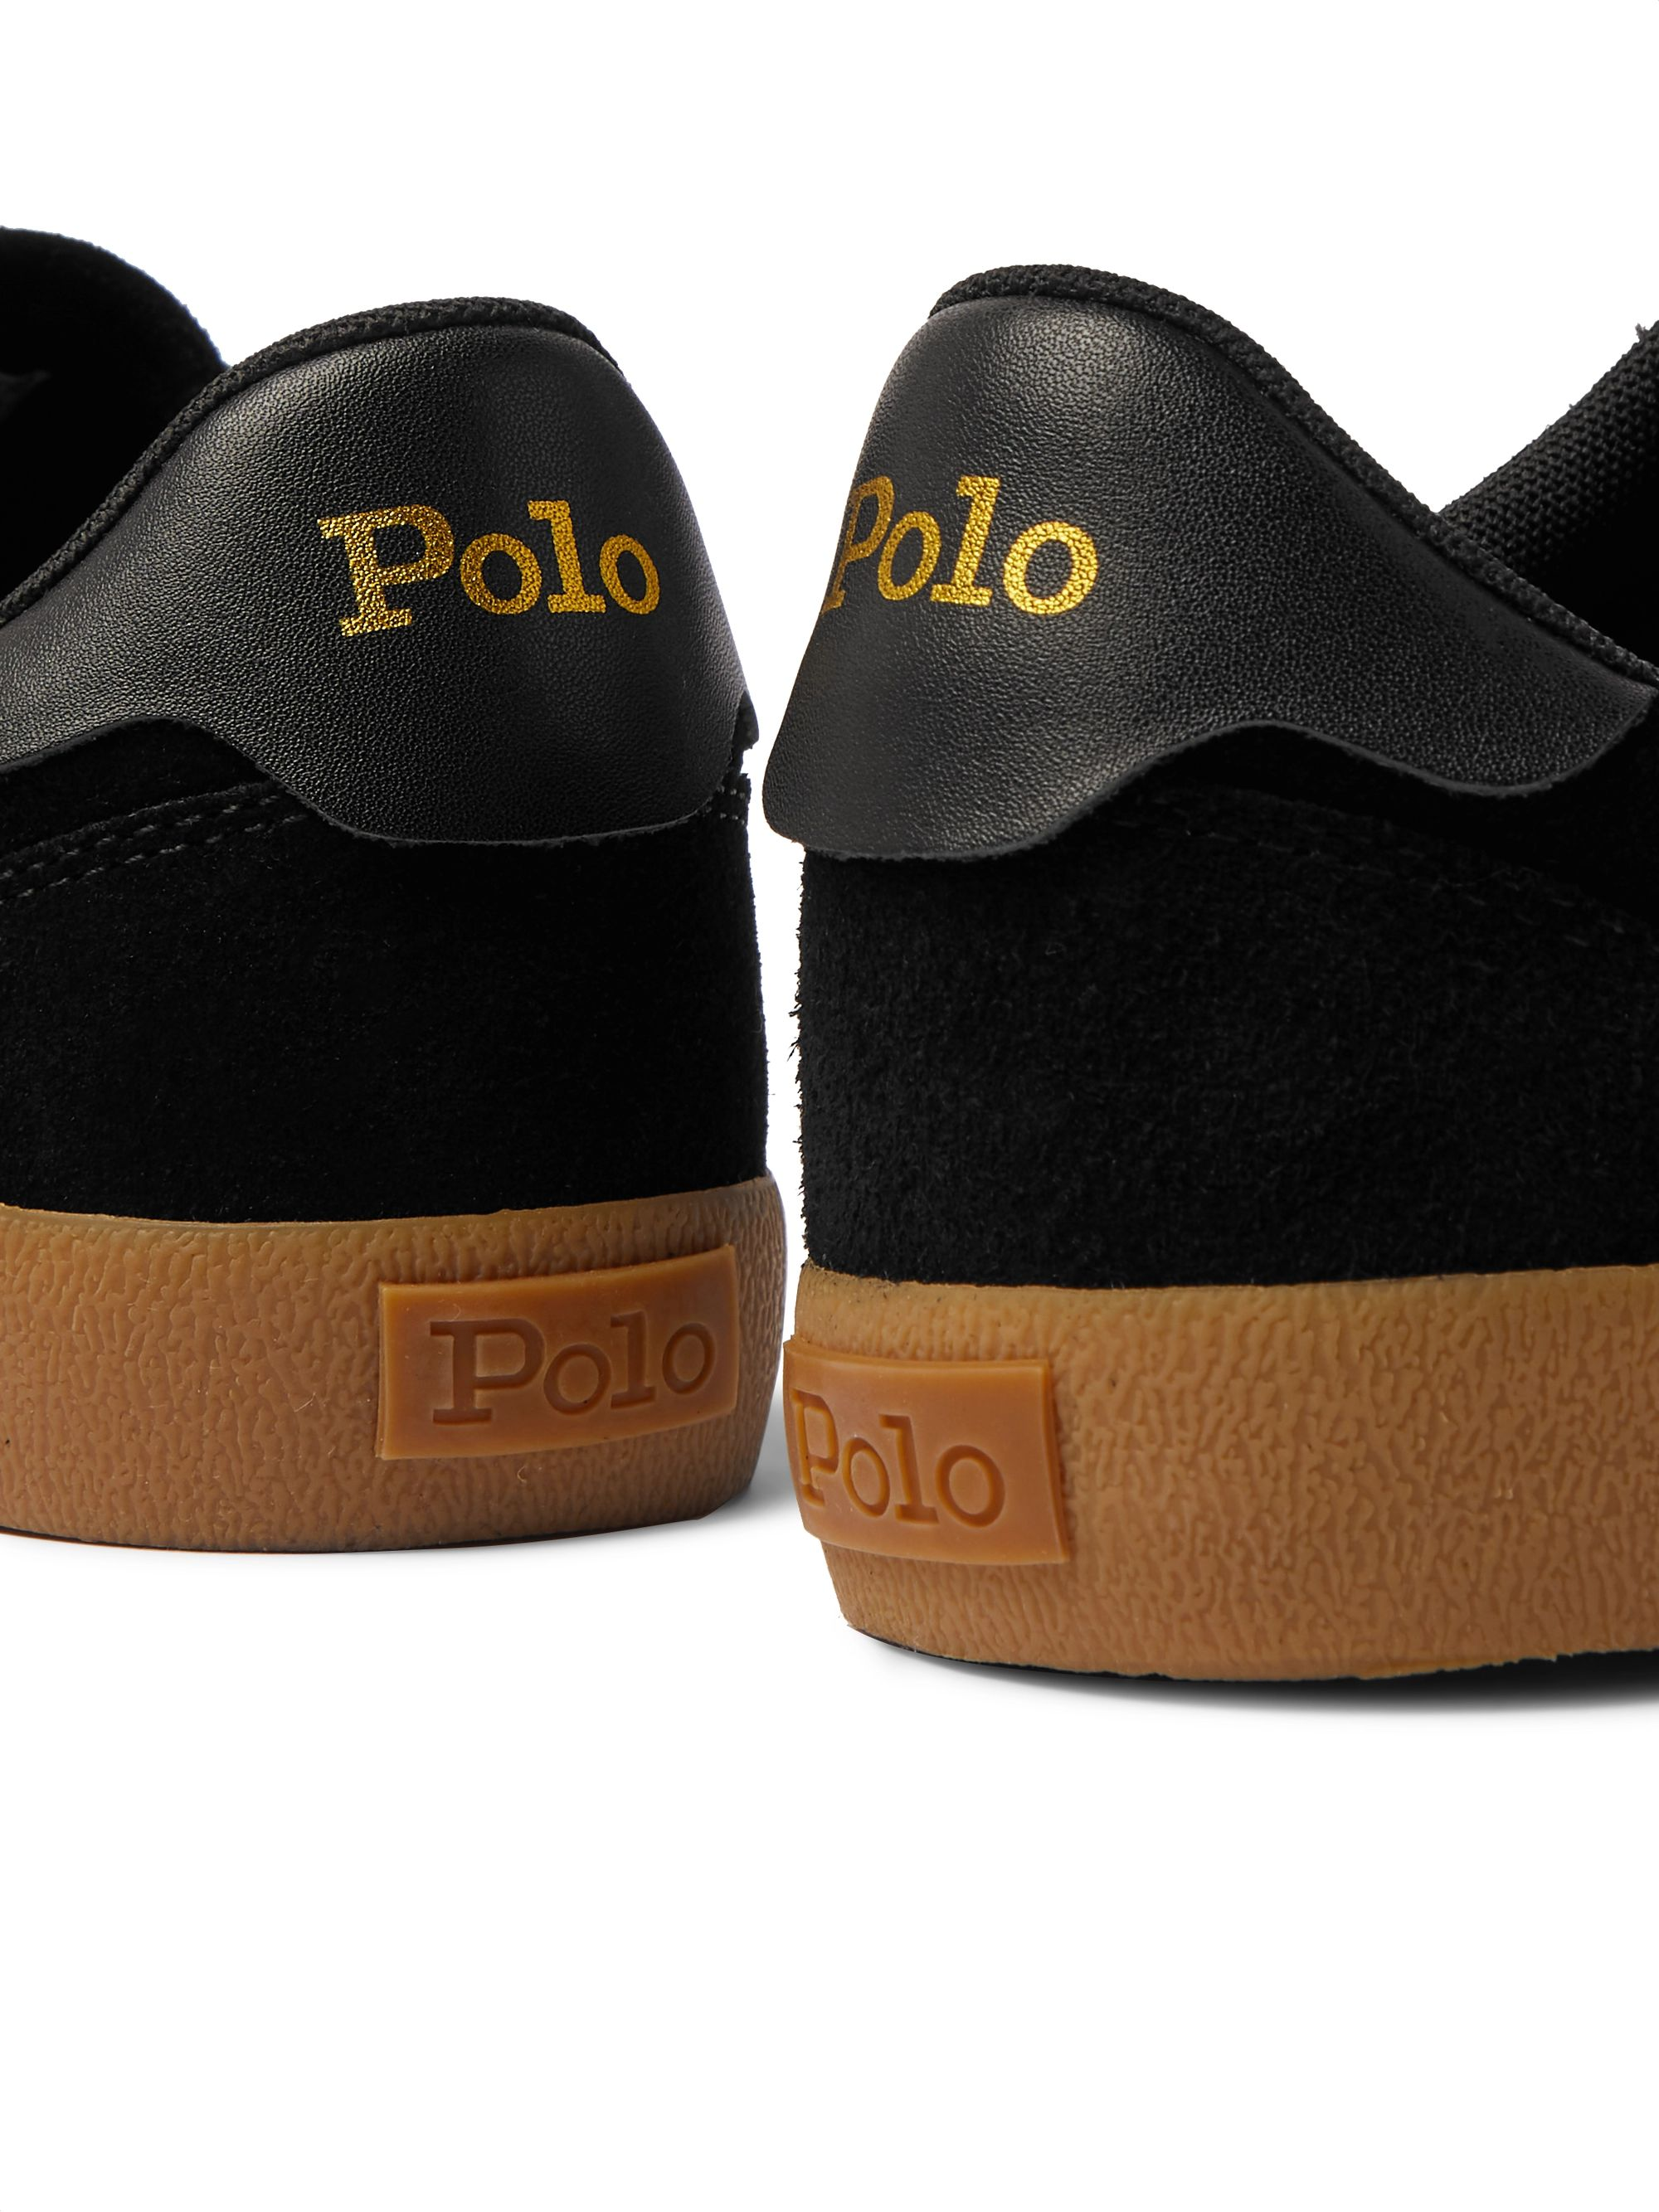 POLO RALPH LAUREN Court Striped Suede Sneakers